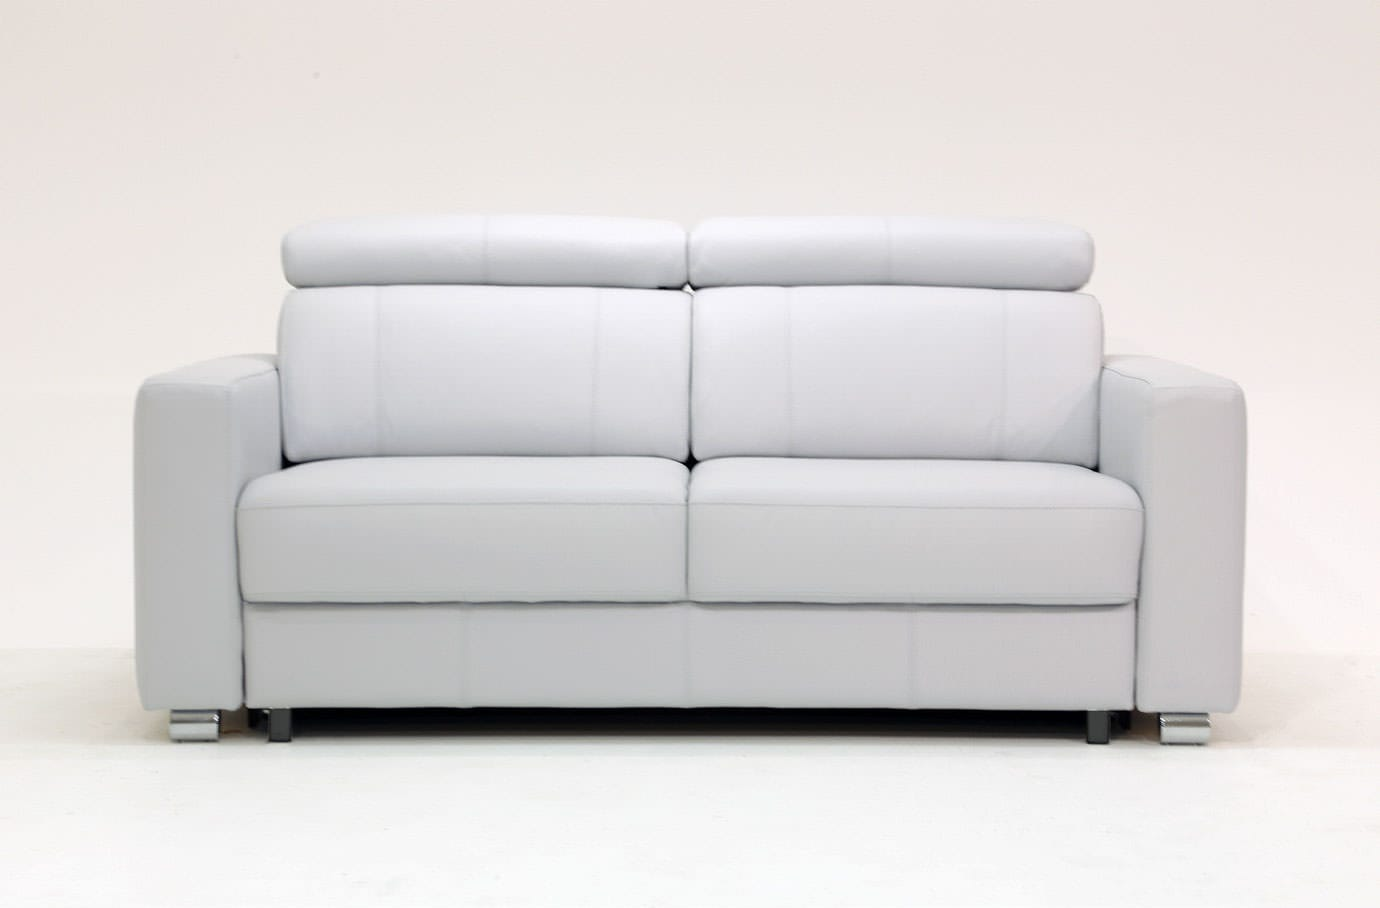 West Loveseat Sleeper Queen Size By Luonto Furniture